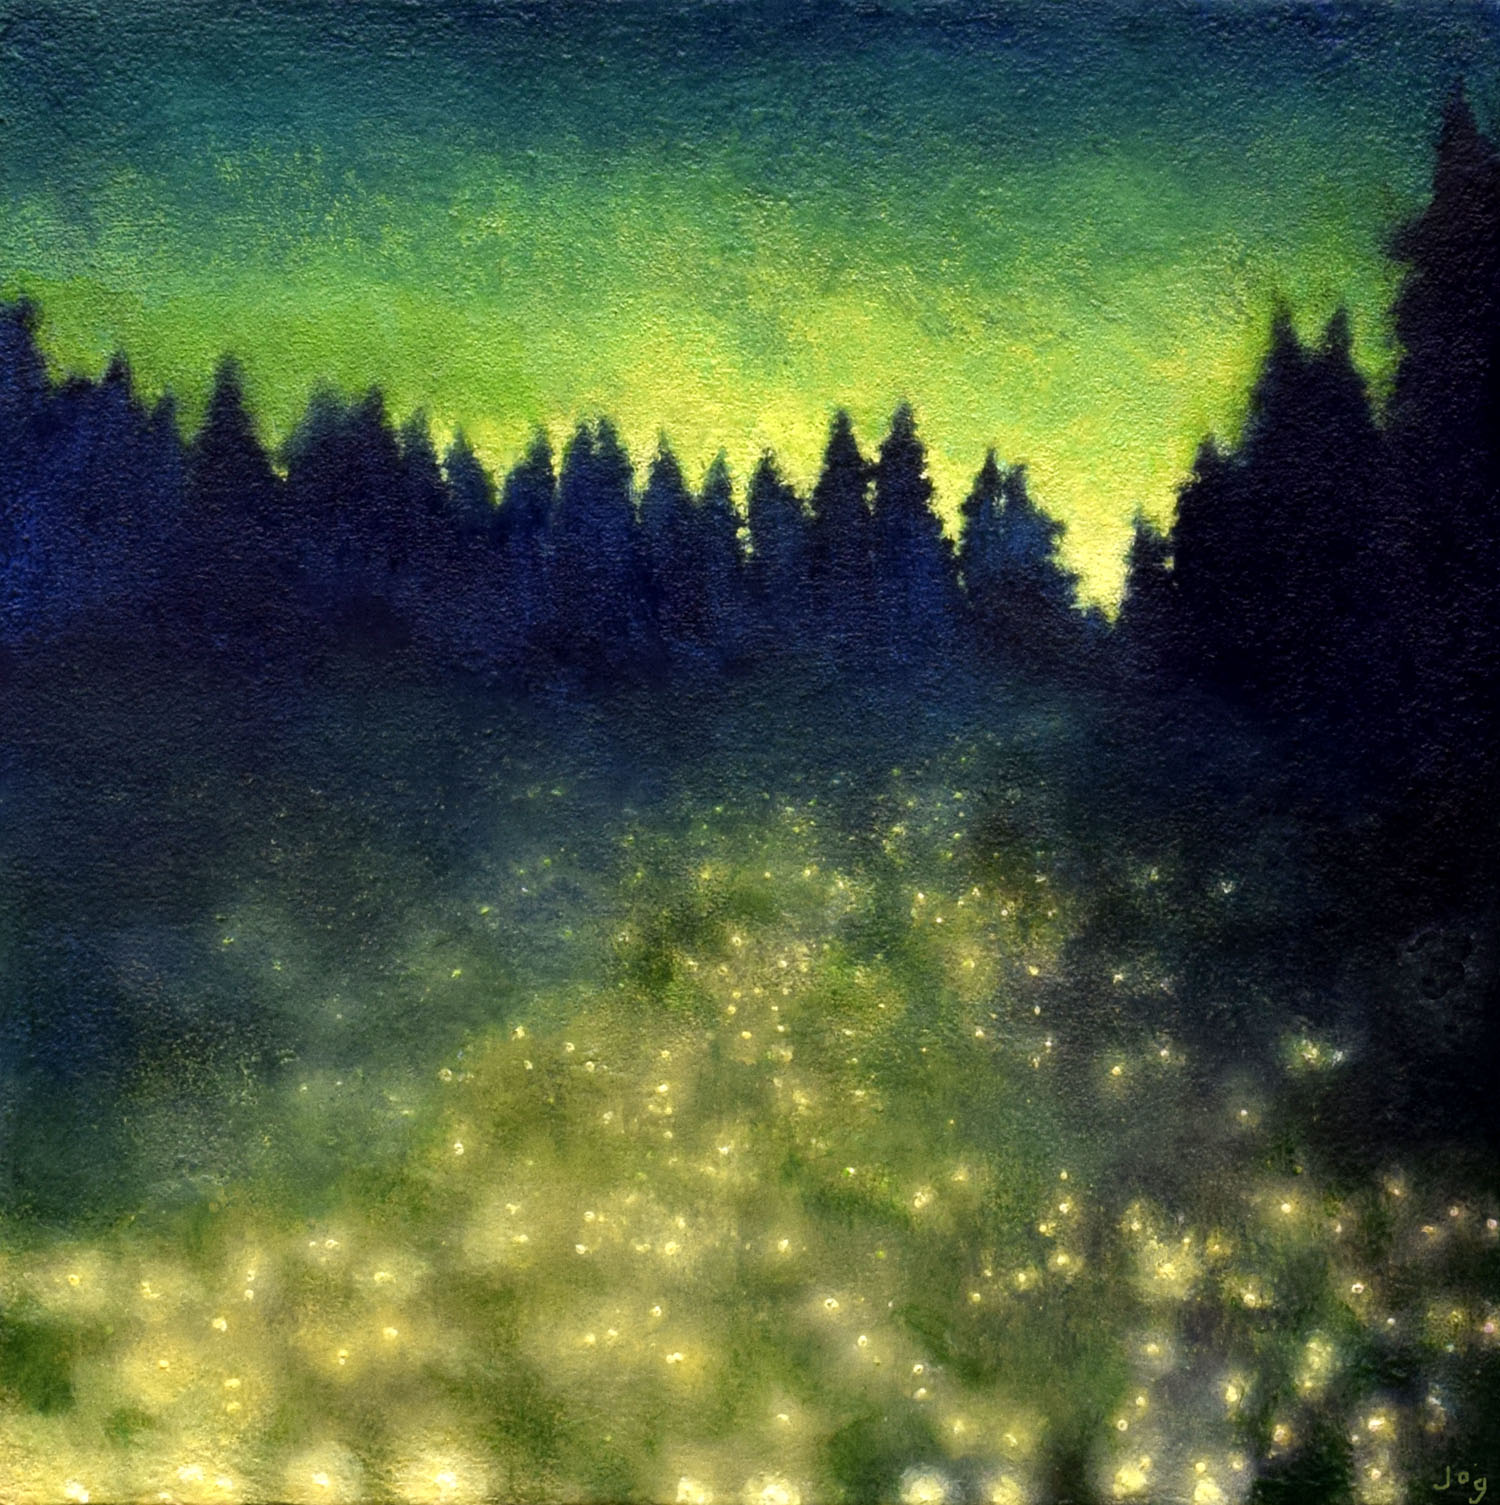 The Field of Fallen Stars